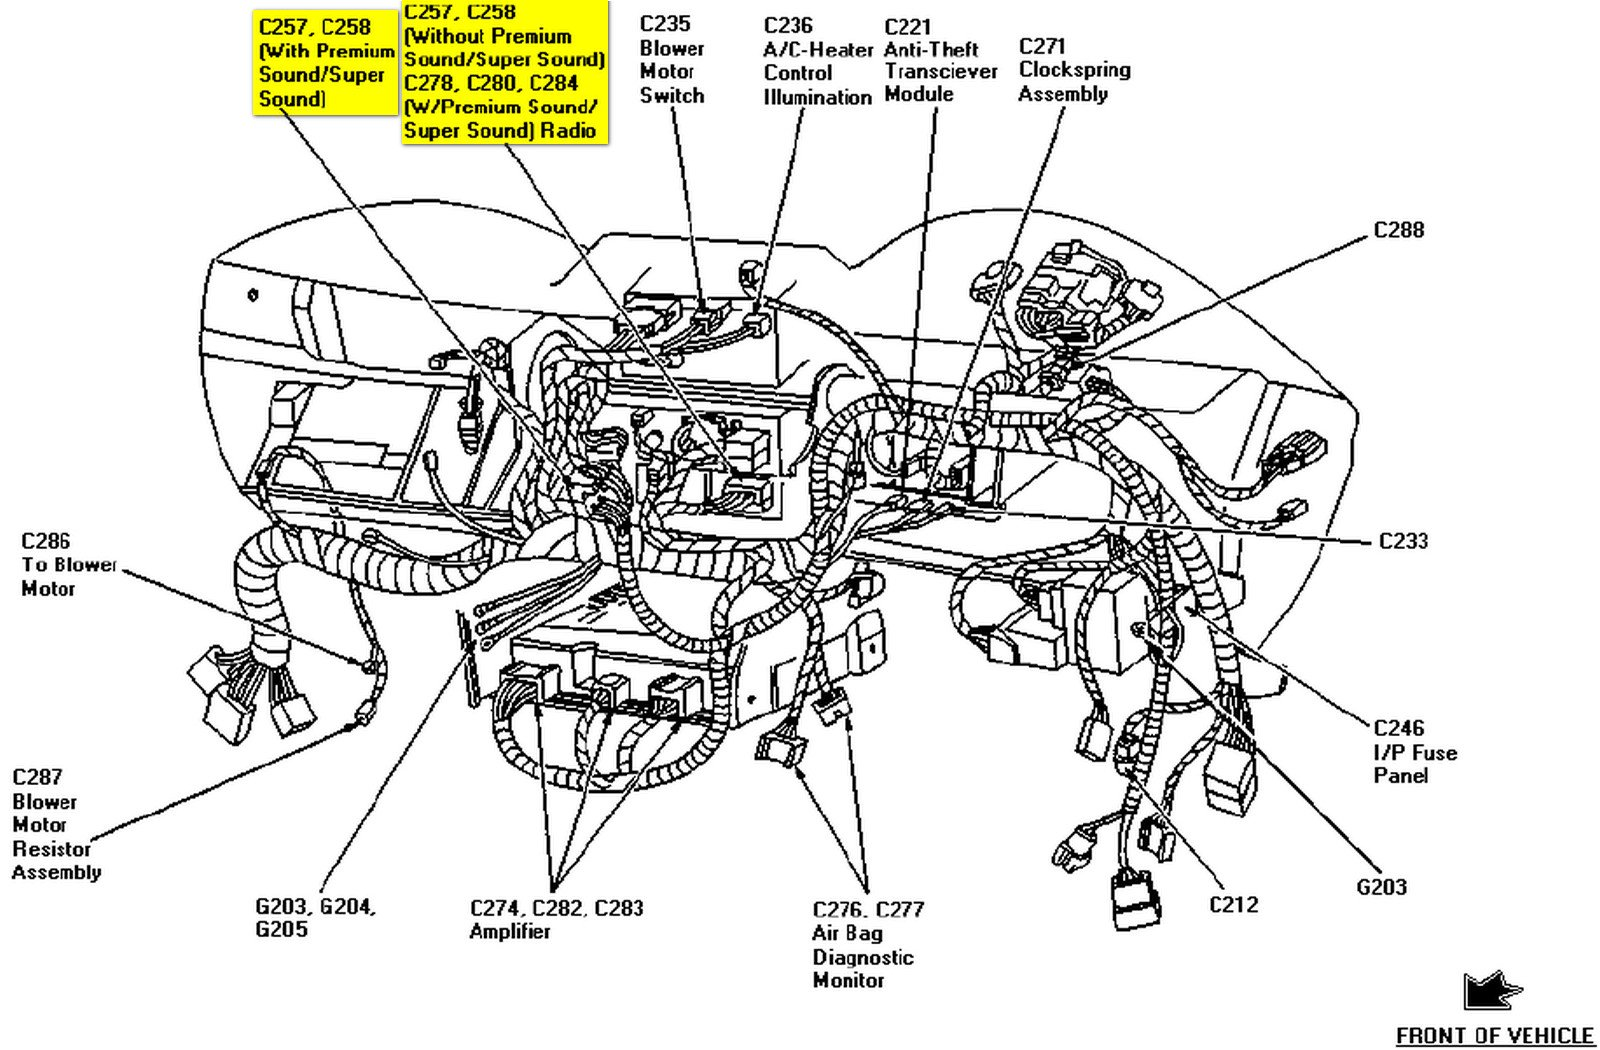 1997 Ford Mustang Radio Wiring Diagram Collection